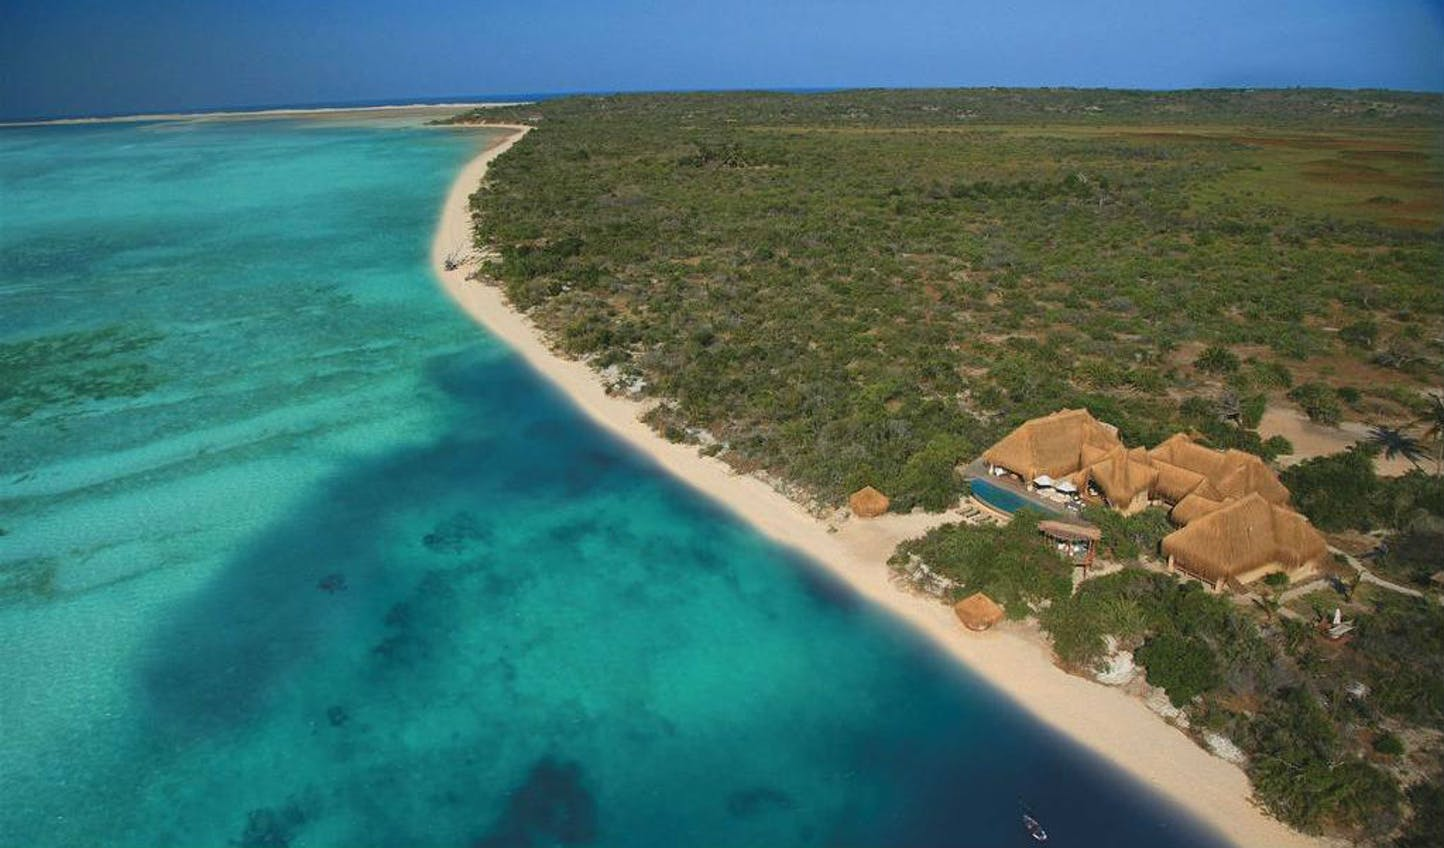 Luxury holiday to Mozambique